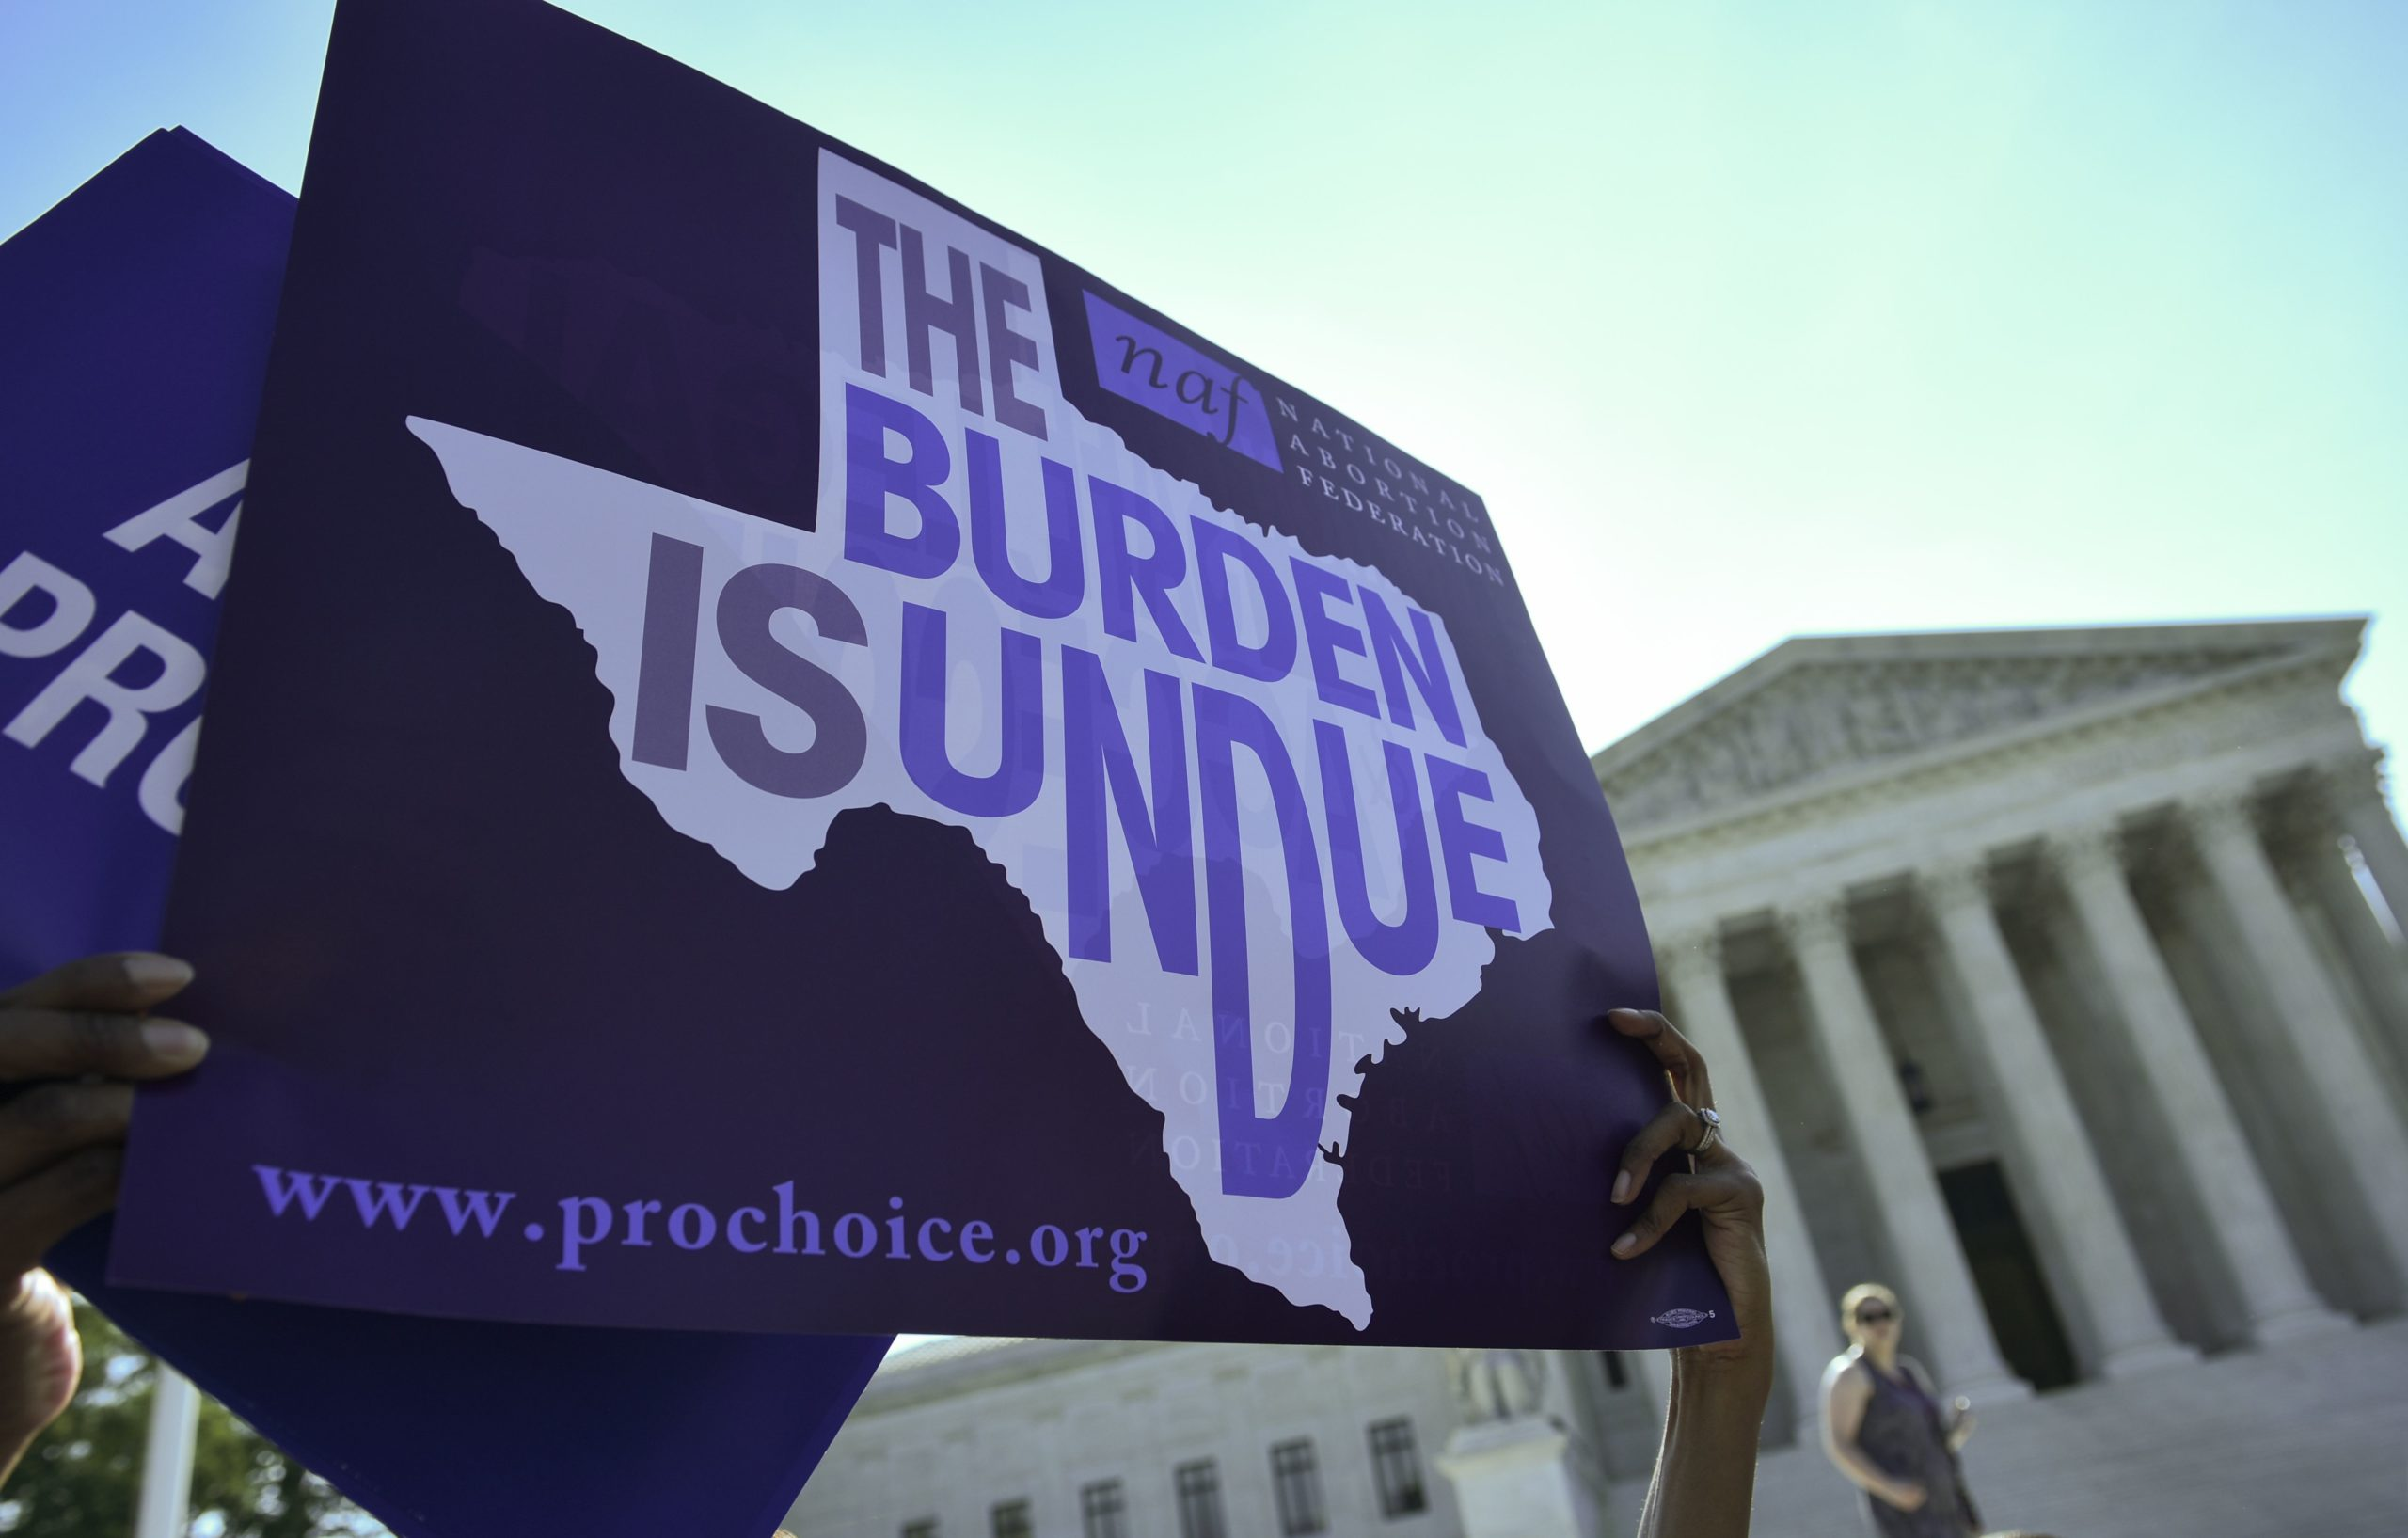 """An abortion rights activist holds placards outside of the US Supreme Court before the Court struck down a Texas law placing restrictions on abortion clinics on June 27, 2016 in Washington, DC. The US Supreme Court on Monday struck down a Texas law placing a raft of restrictions on abortion clinics, handing a major victory to the """"pro-choice"""" camp in the country's most important ruling on the divisive issue in a generation. / AFP / MANDEL NGAN (Photo credit should read MANDEL NGAN/AFP via Getty Images)"""